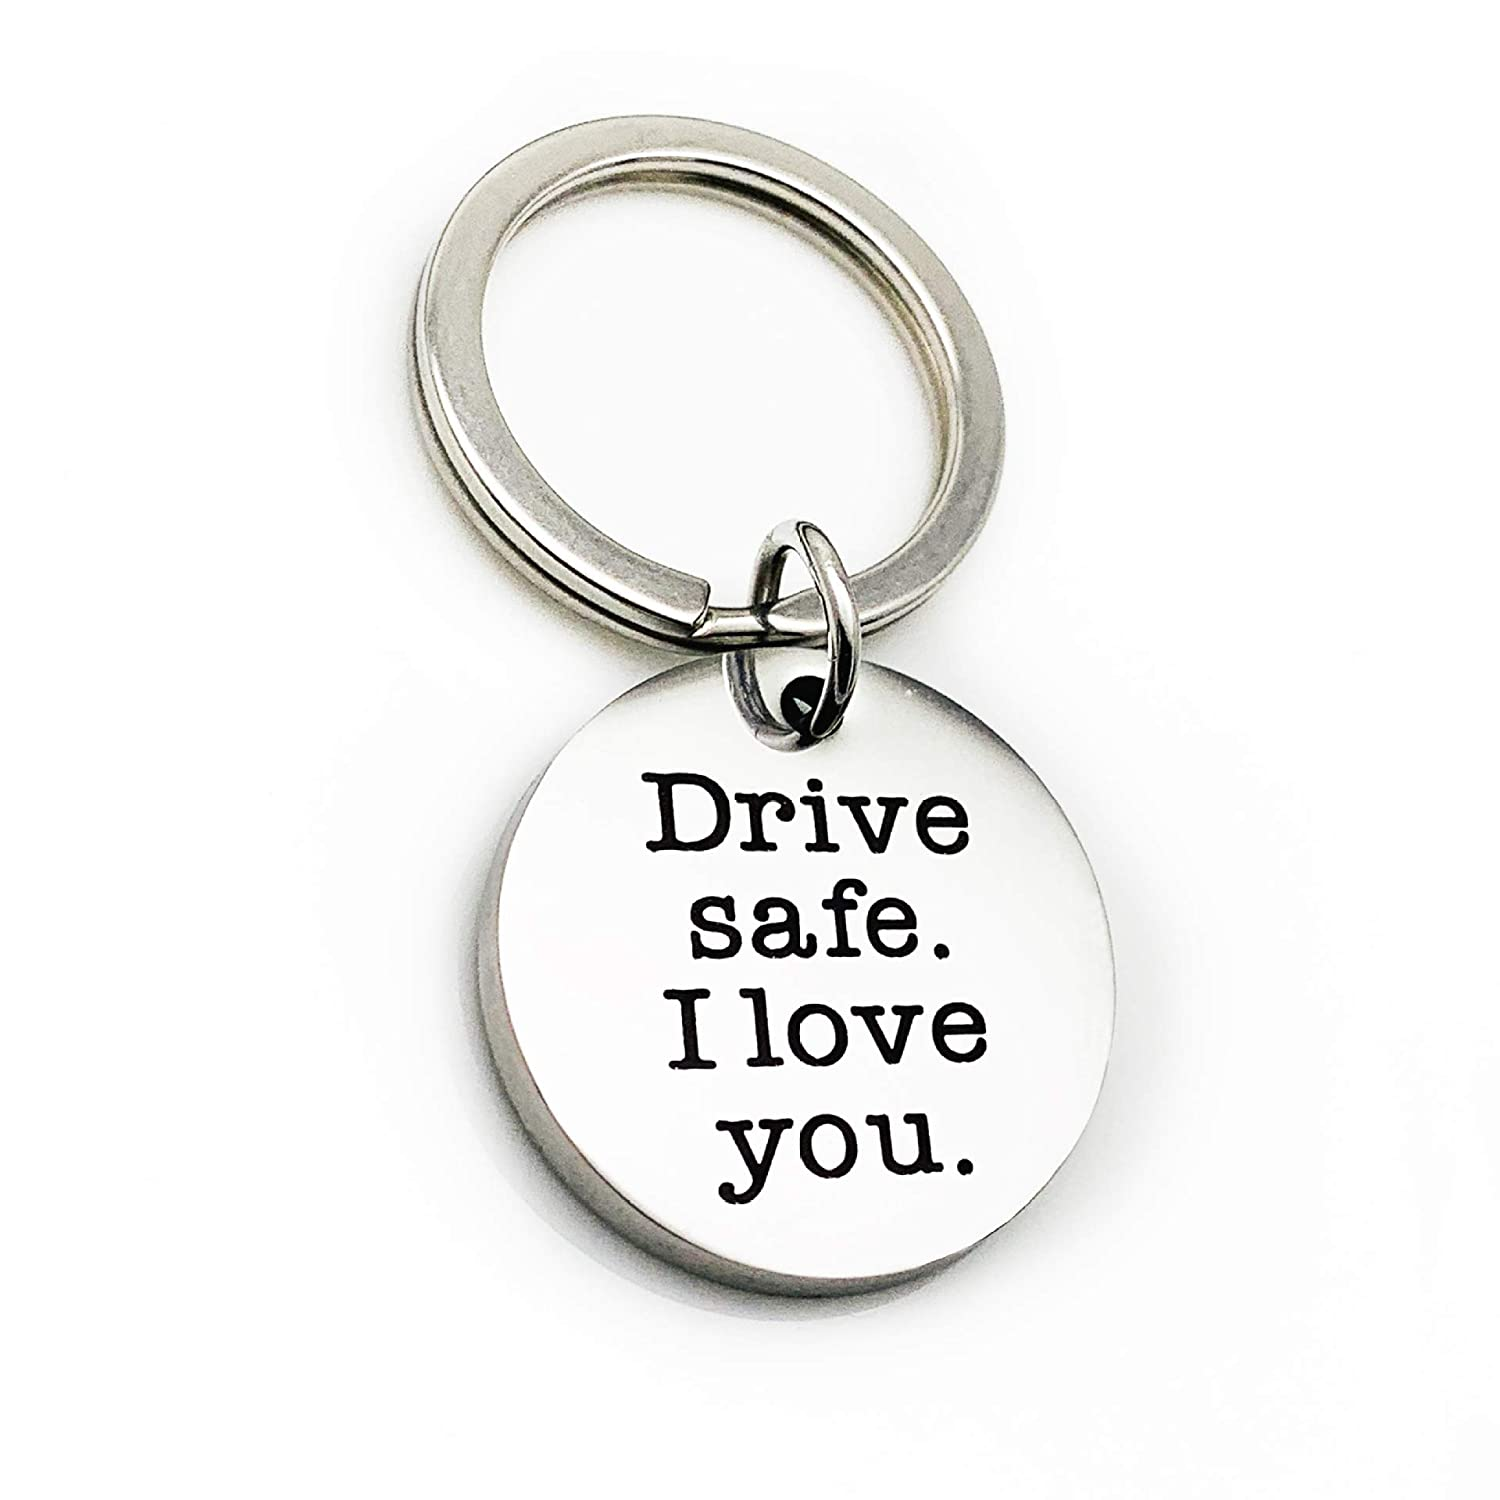 Drive Safe Keychain I Need You Here with Me Trucker Husband Gifts for Dad Father Valentines Day Stainless Steel Keychain